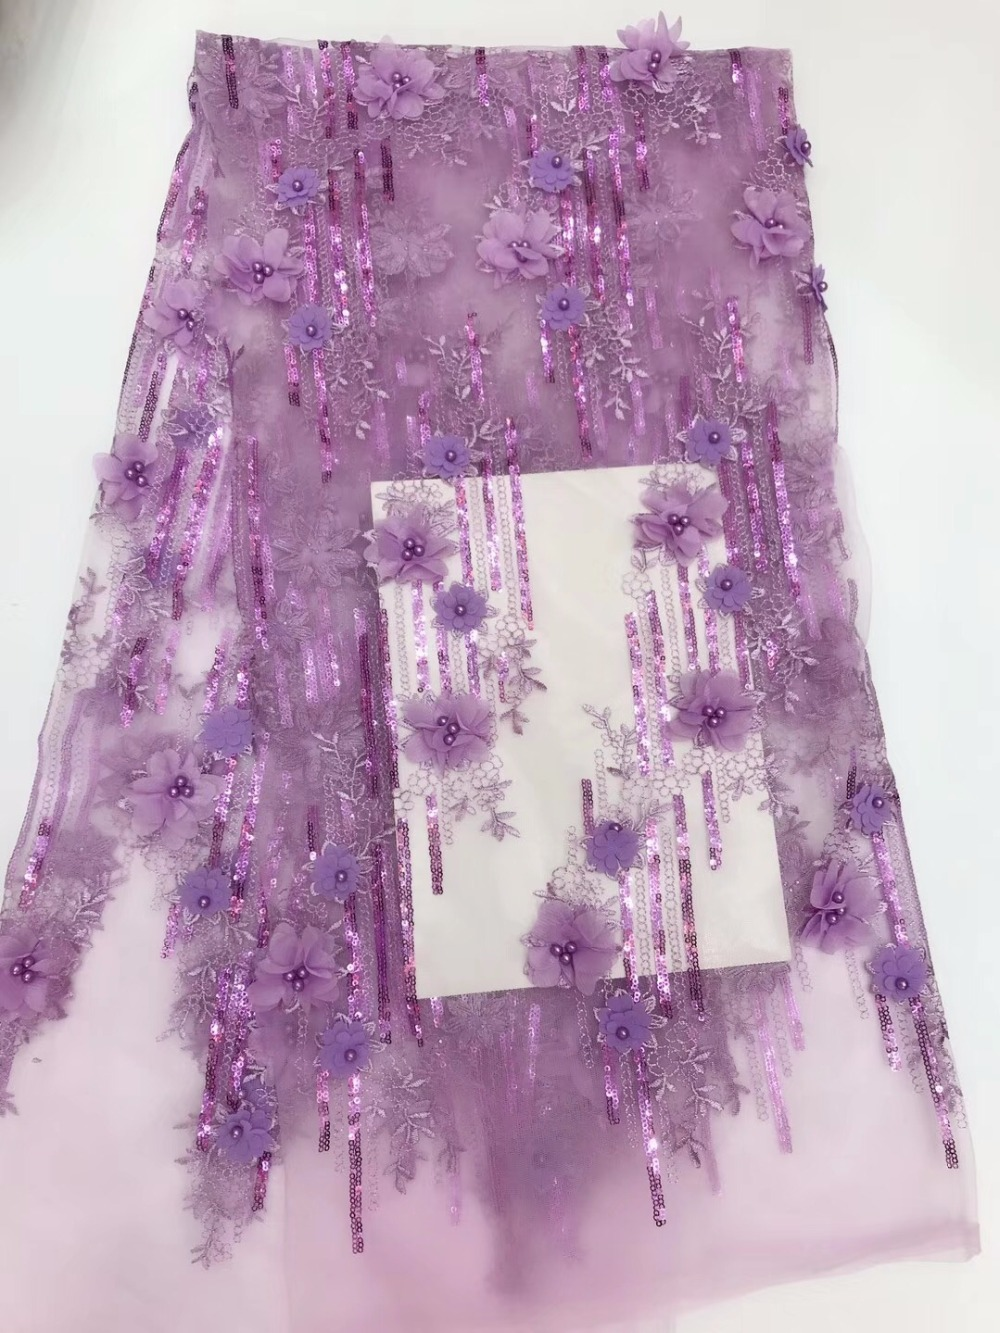 African French Net lilac Lace Fabric with Beads High Quality African Lace Fabric with 3d Flowers 5yards lace fabricAfrican French Net lilac Lace Fabric with Beads High Quality African Lace Fabric with 3d Flowers 5yards lace fabric